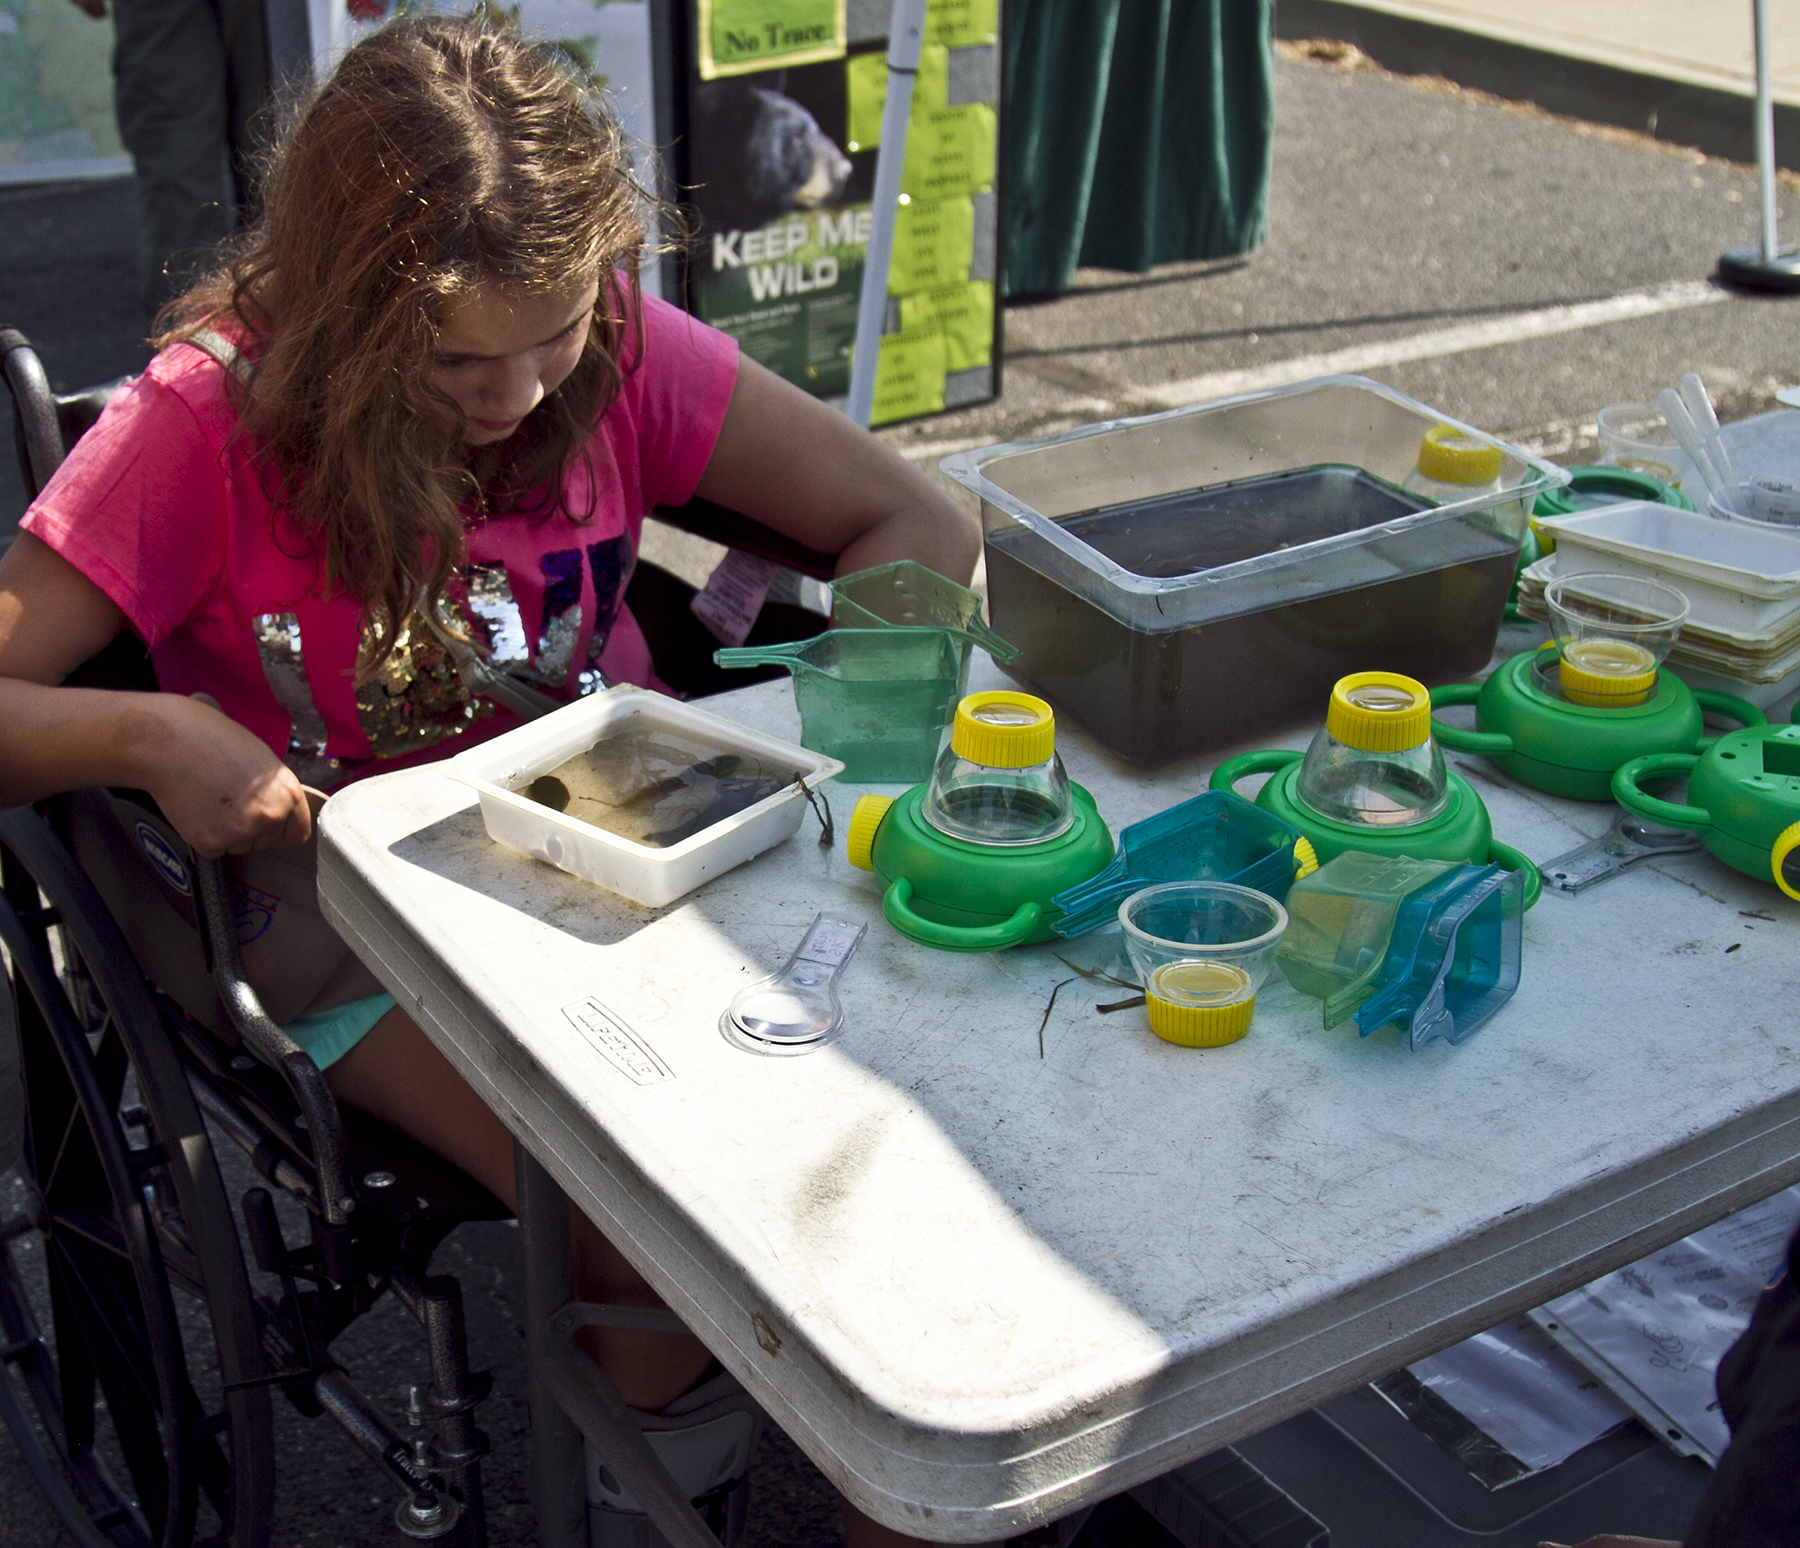 A child observes aquatic wildlife at one of the booths during the C.A.S.T. for Kids event at New Melones Lake